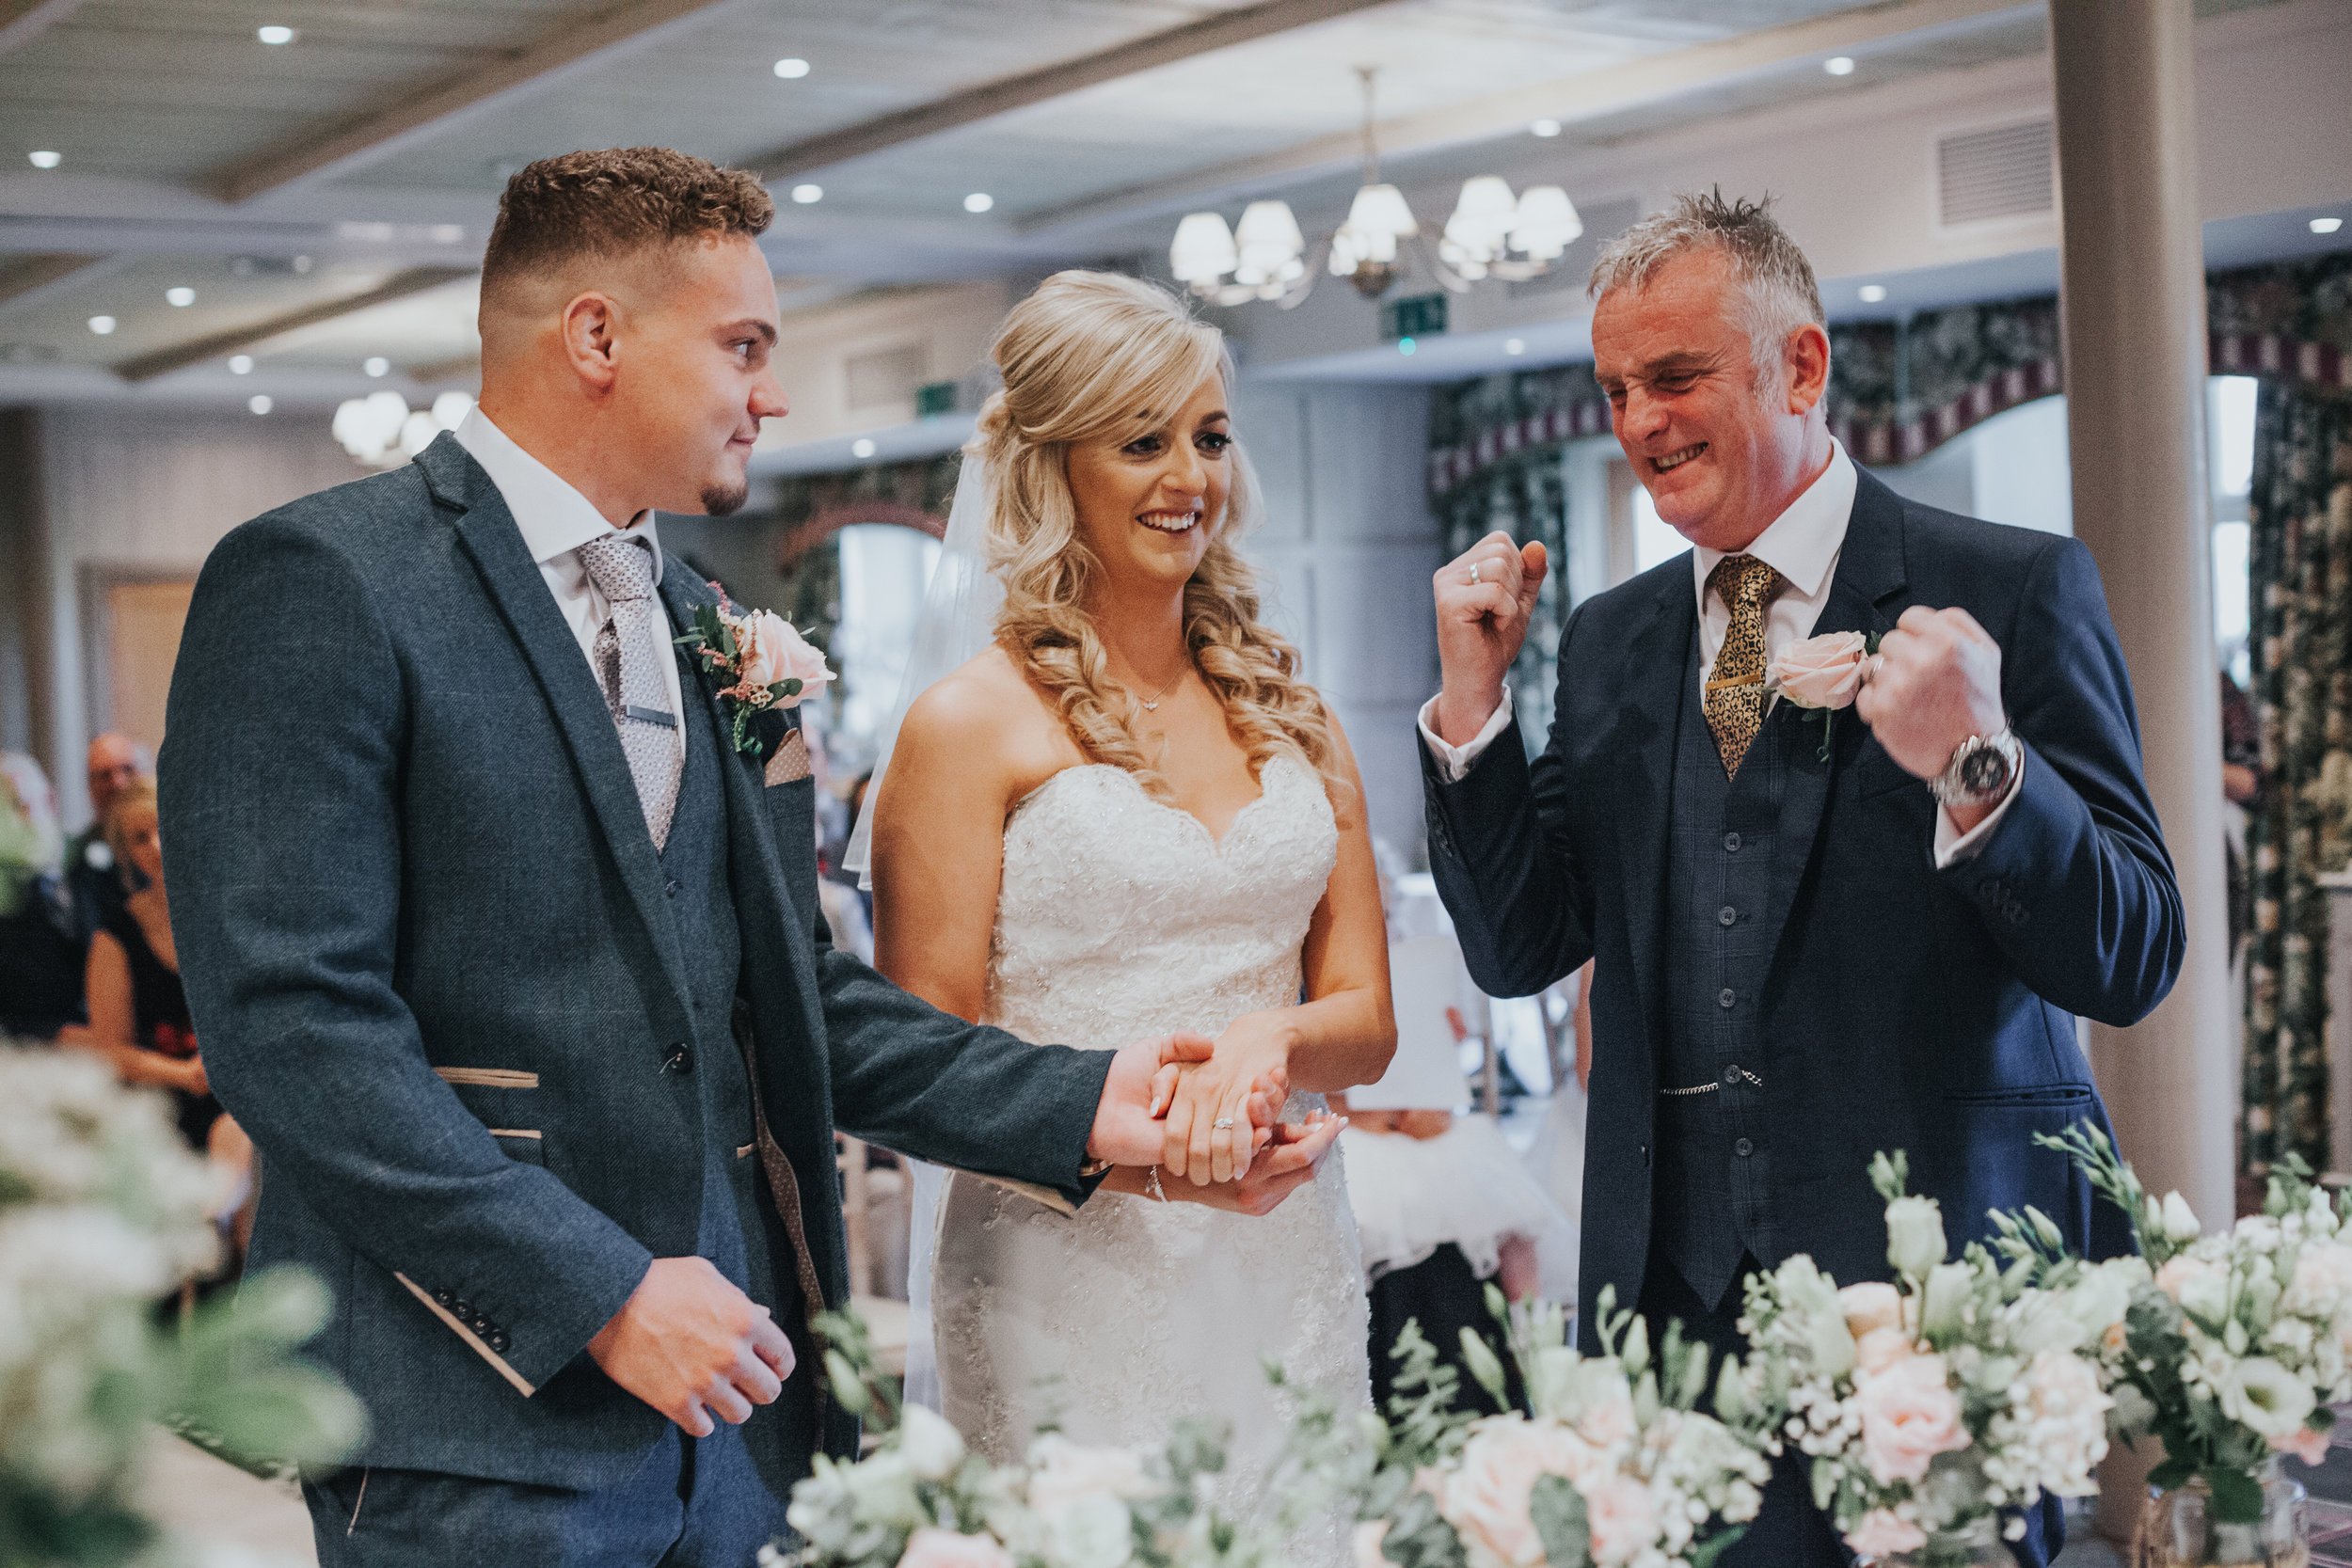 Father of the bride looks very excited about giving his daughter away...